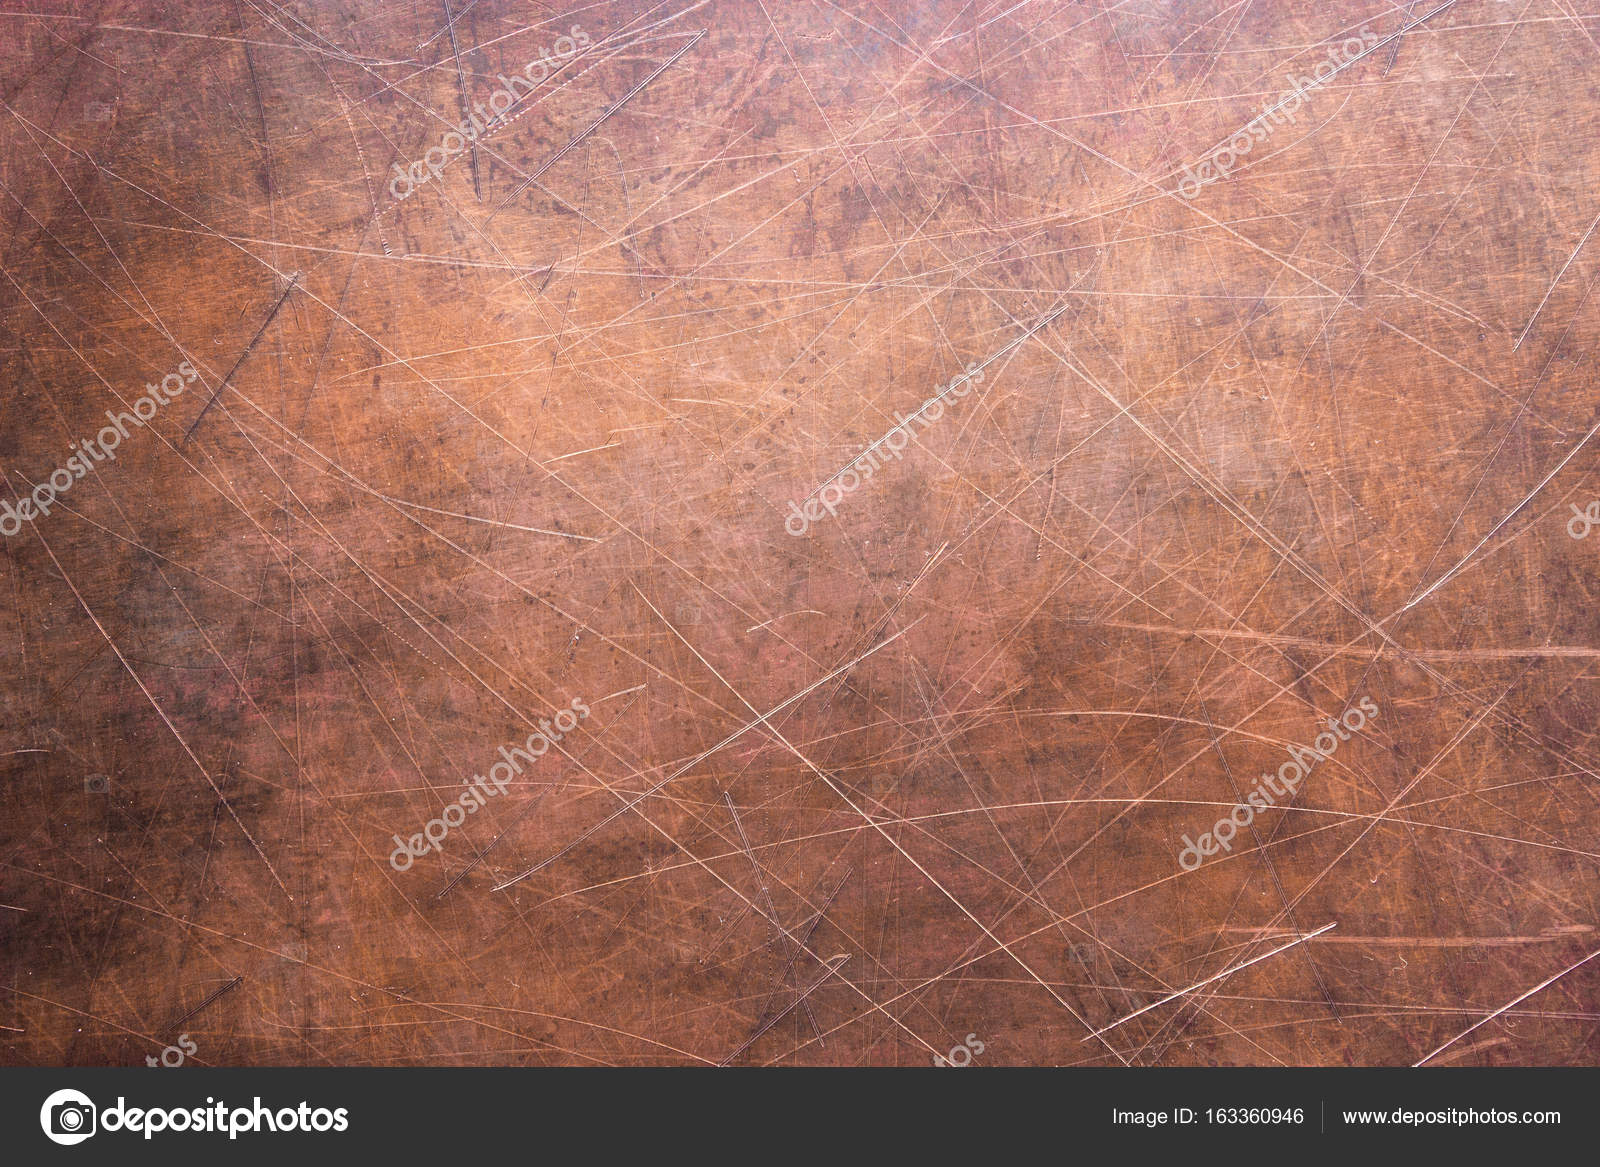 Copper Plate Texture Brushed Orange Metal Surface Photo By Dmitr1ch